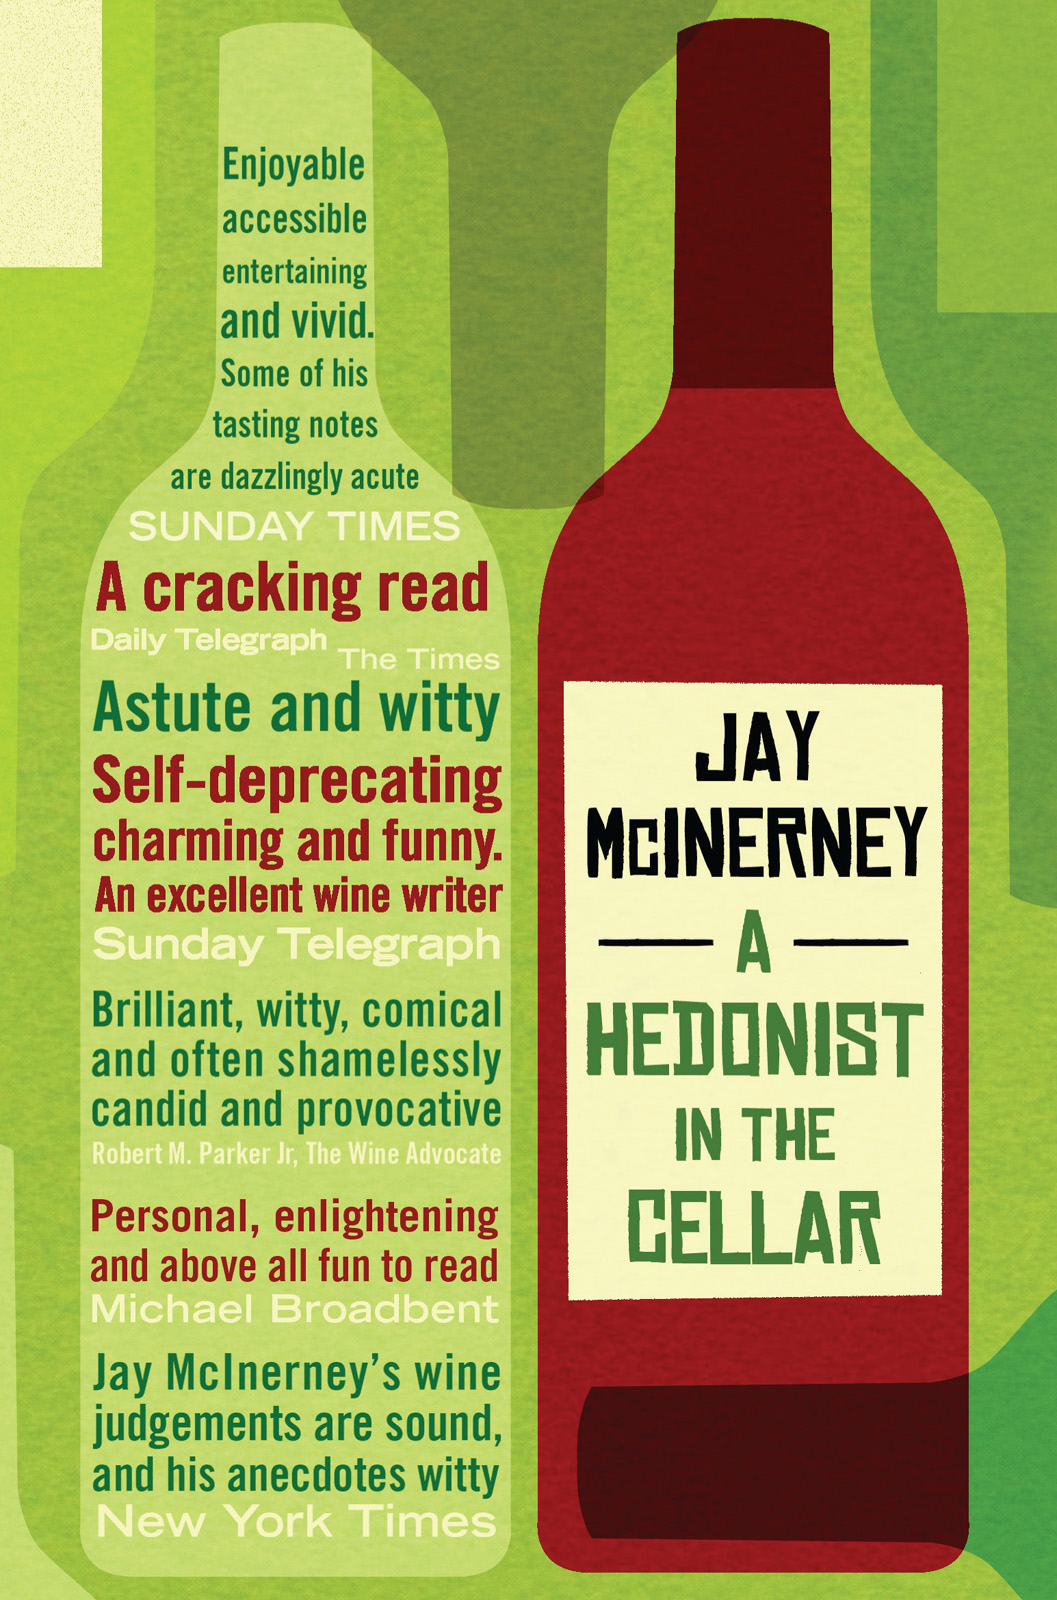 A Hedonist in the Cellar Adventures in Wine